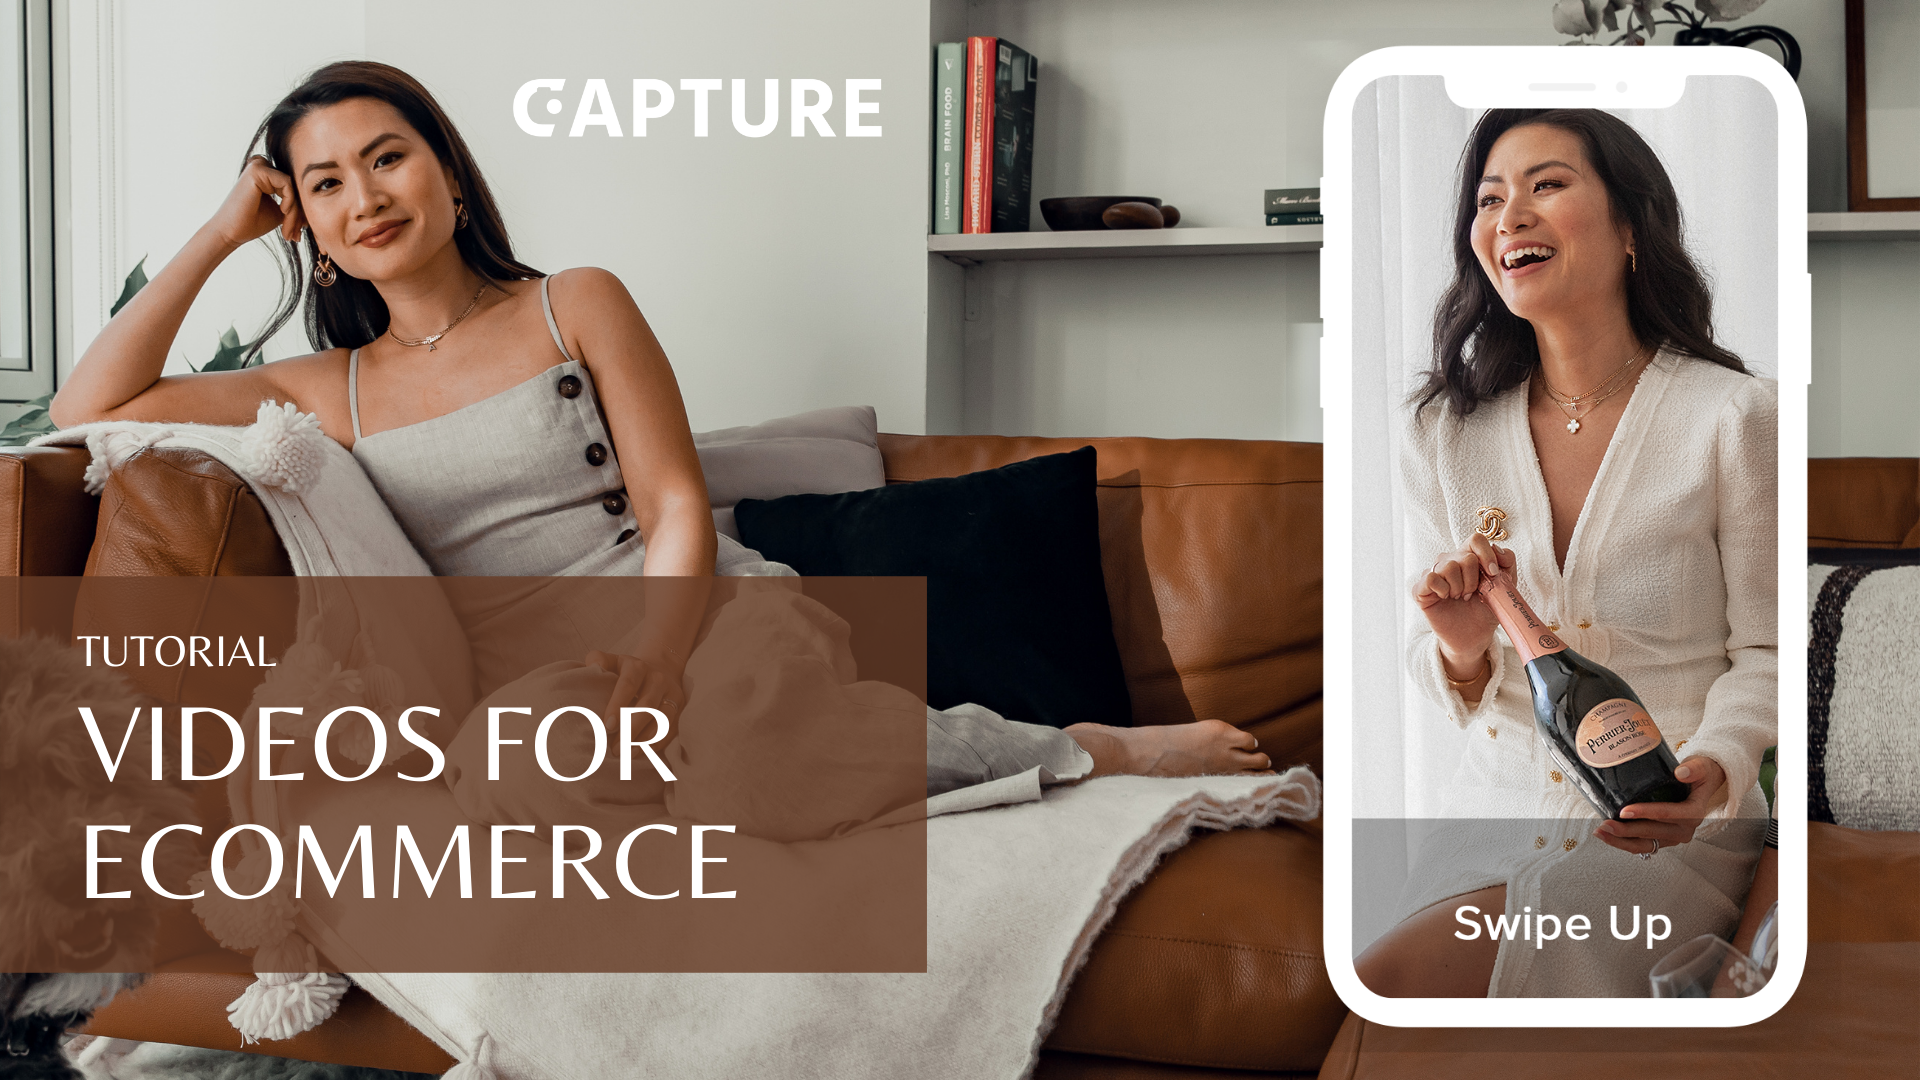 Ecommerce Videos Guide: How to Produce Cost-Effective Videos That Outperform